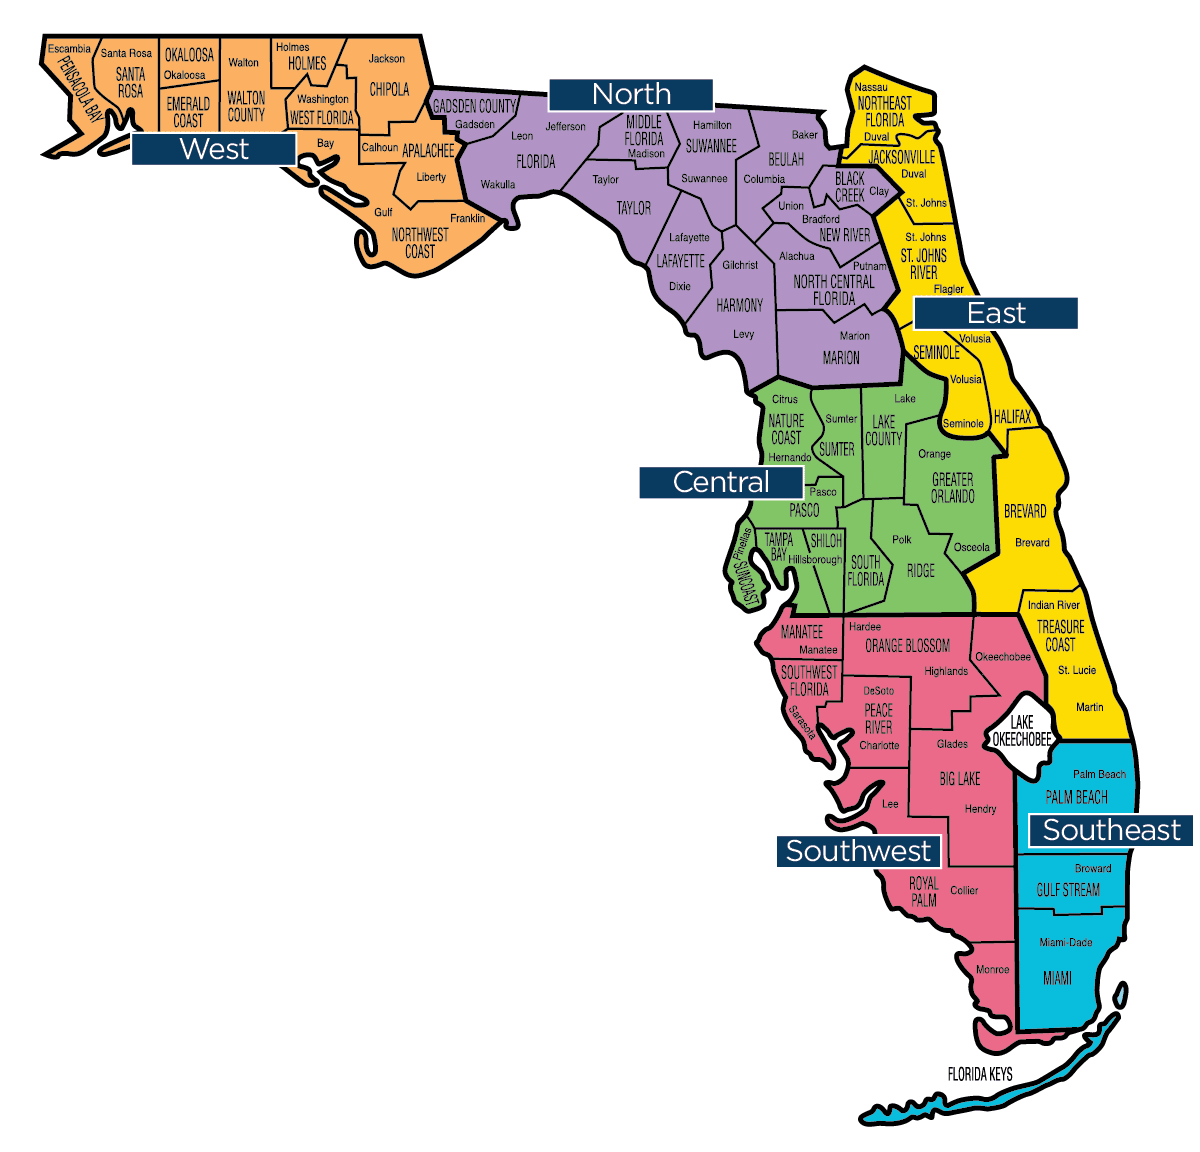 Florida Map - Florida Baptist Convention | FBC